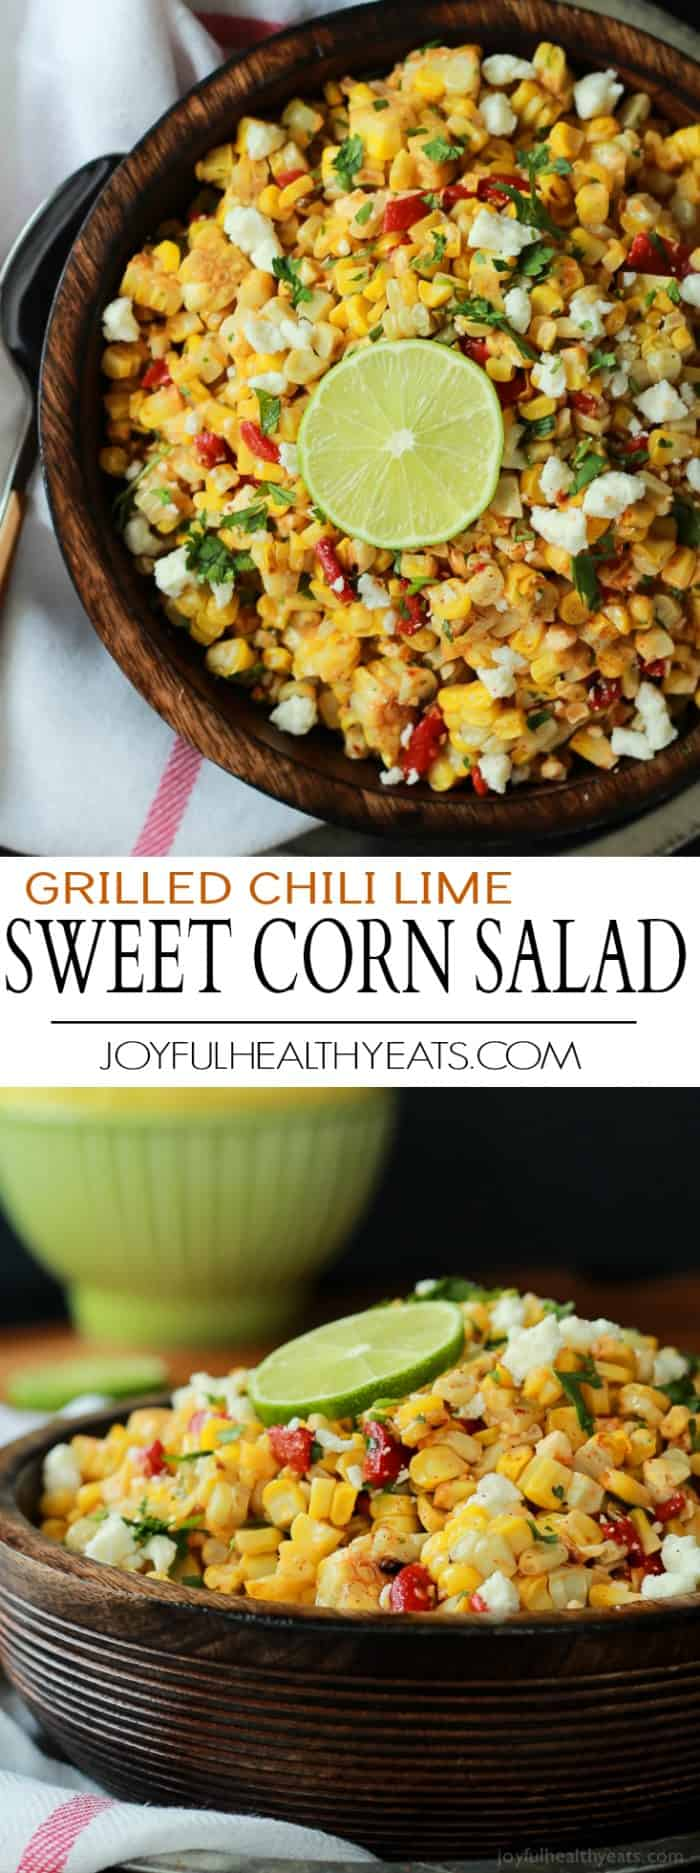 Grilled Chili Lime Sweet Corn Salad photo collage